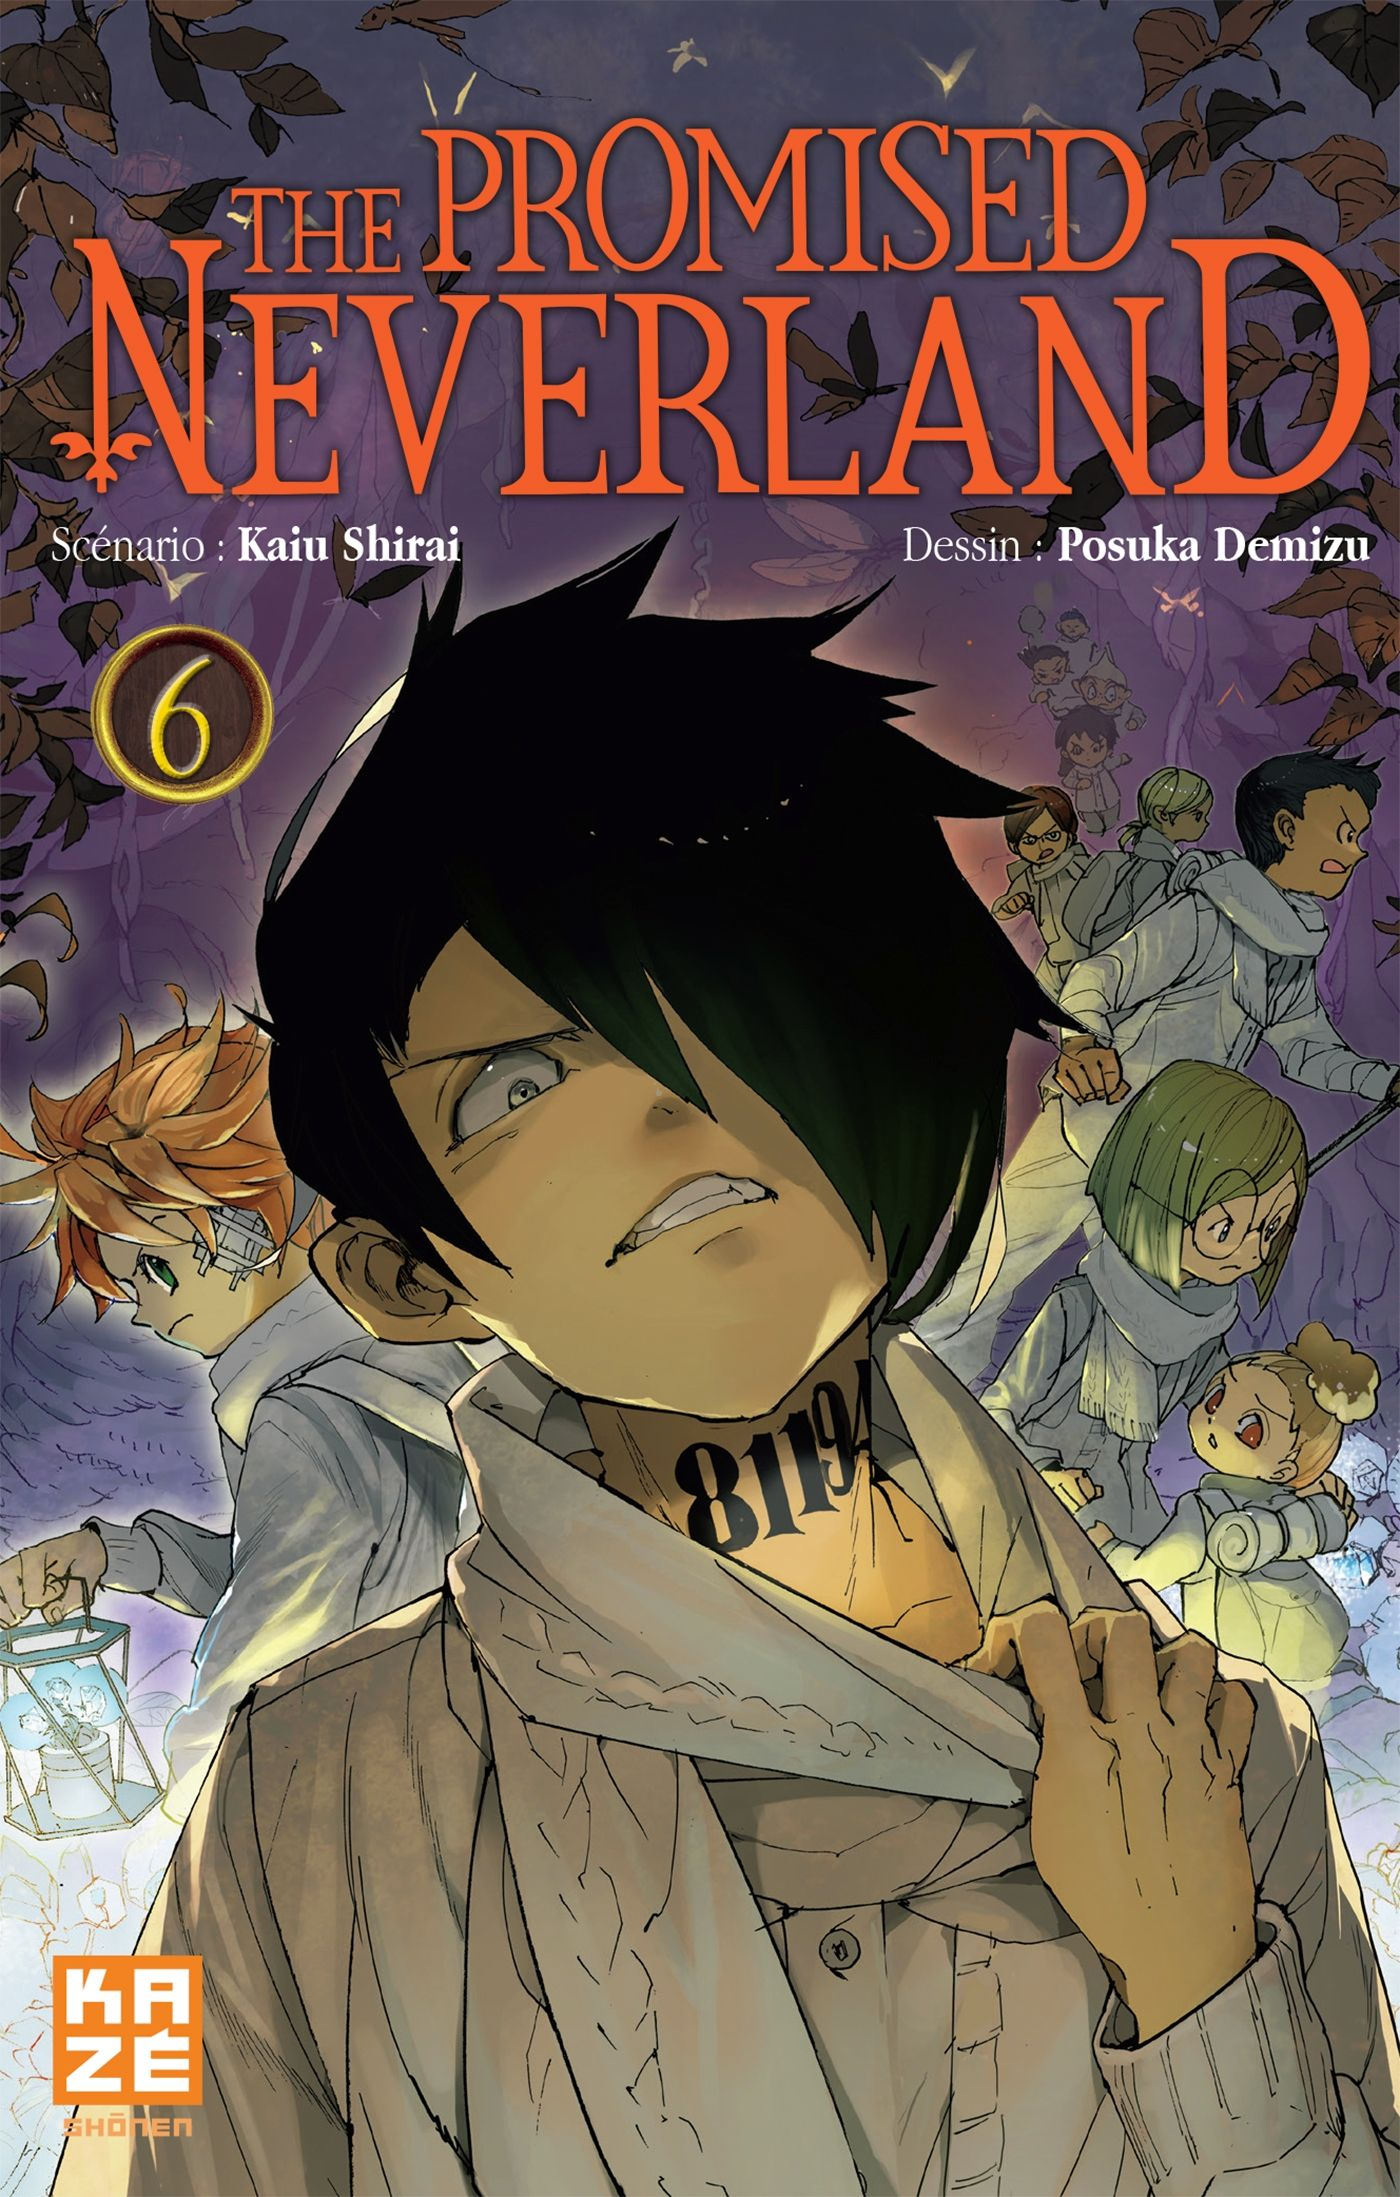 La couverture du tome 6 de The Promised Neverland 😱😱 Le